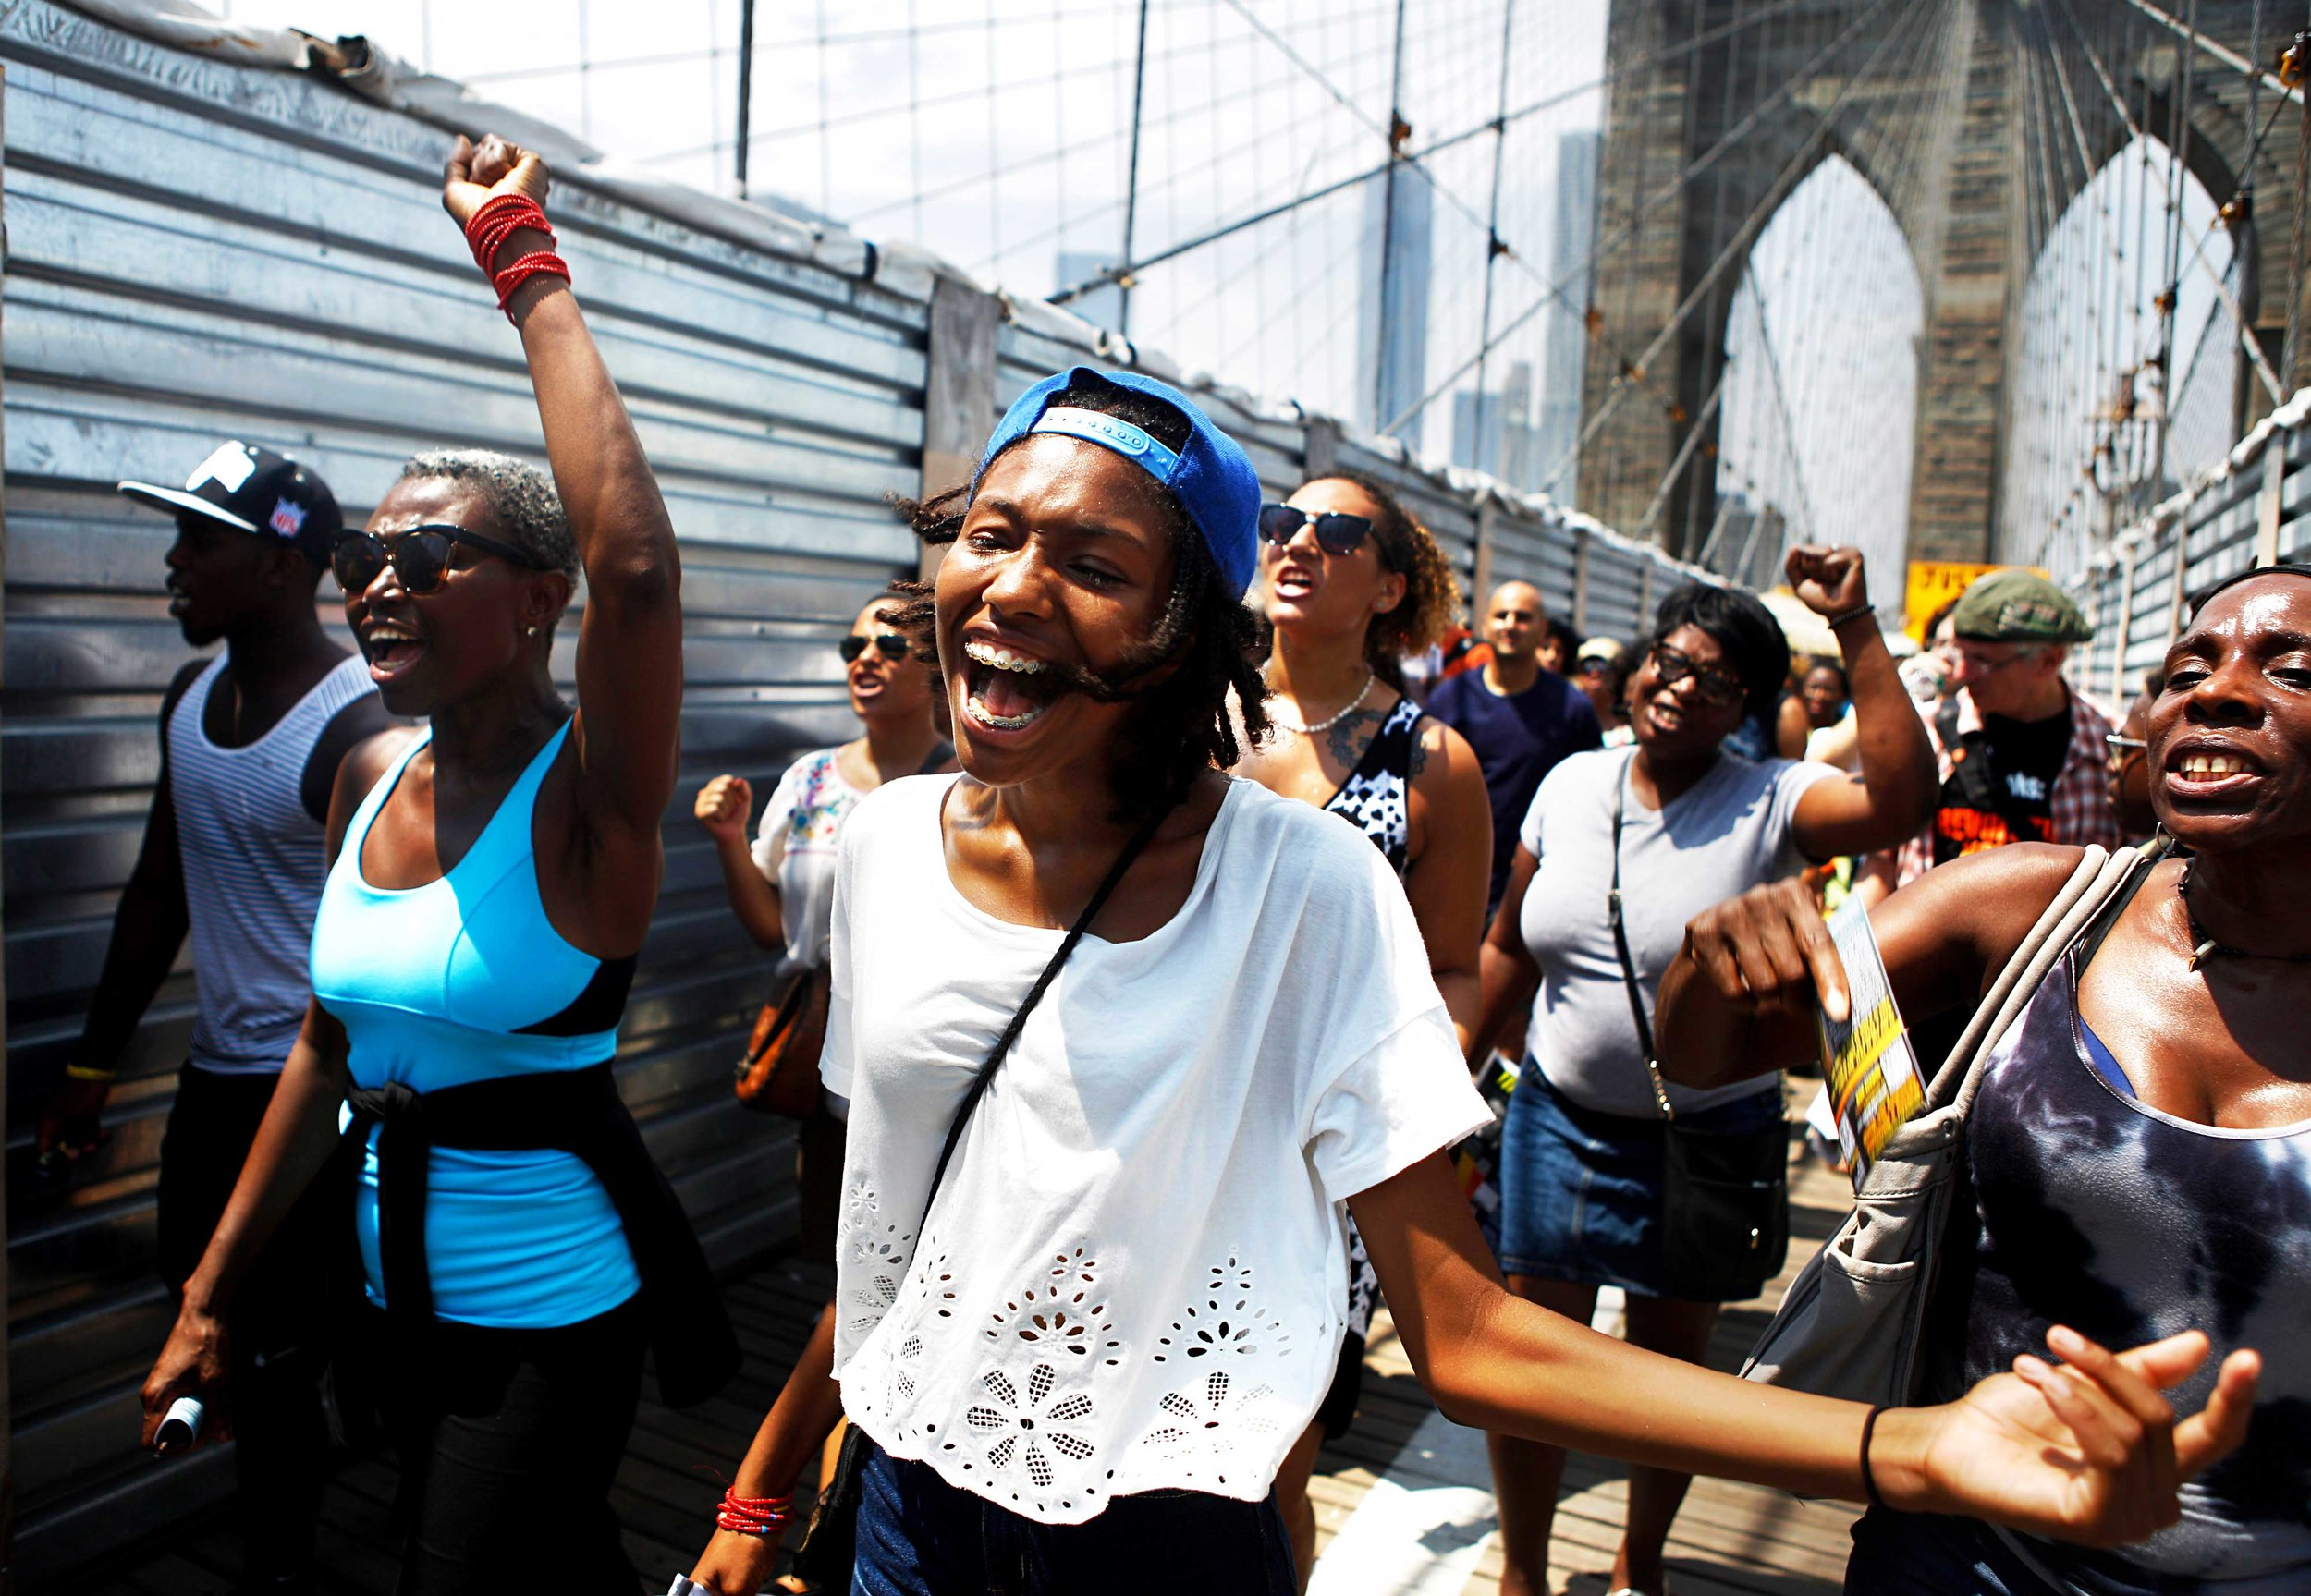 "After attending a rally in Manhattan in honor of Trayvon Martin, many marched across the Brooklyn Bridge chanting ""What do we want? Justice!""   The rally and march came one week after George Zimmerman was found not Guilty for the death of Trayvon Martin in 2012."